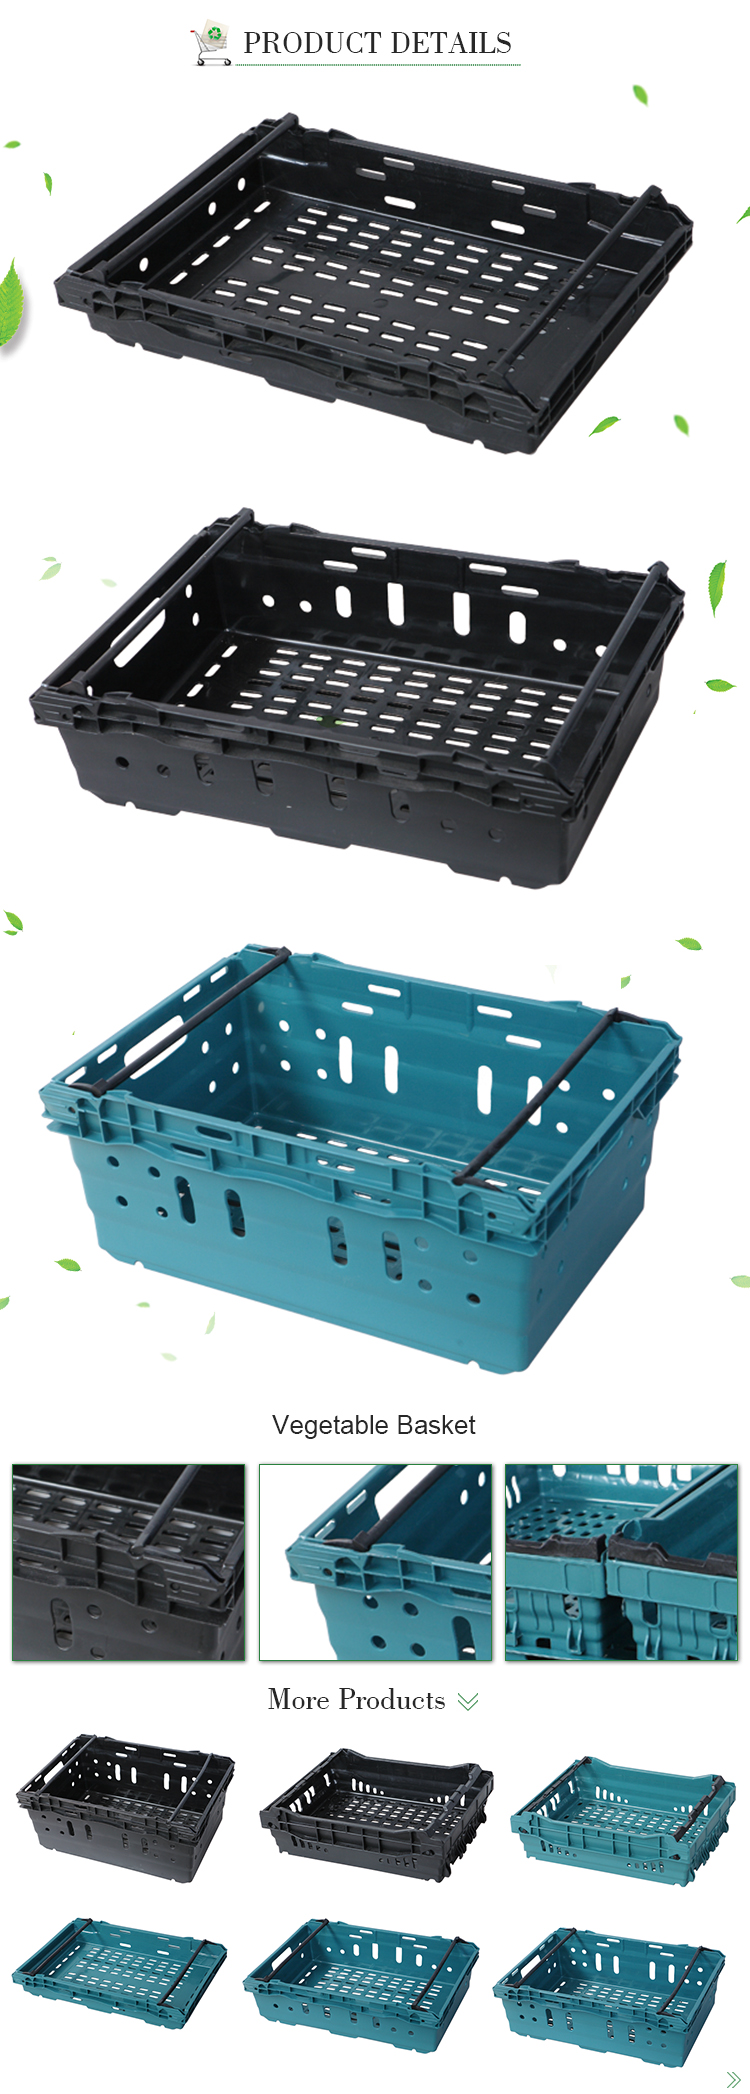 635x425x170mm Plastic mesh type food grade stackable storage basket